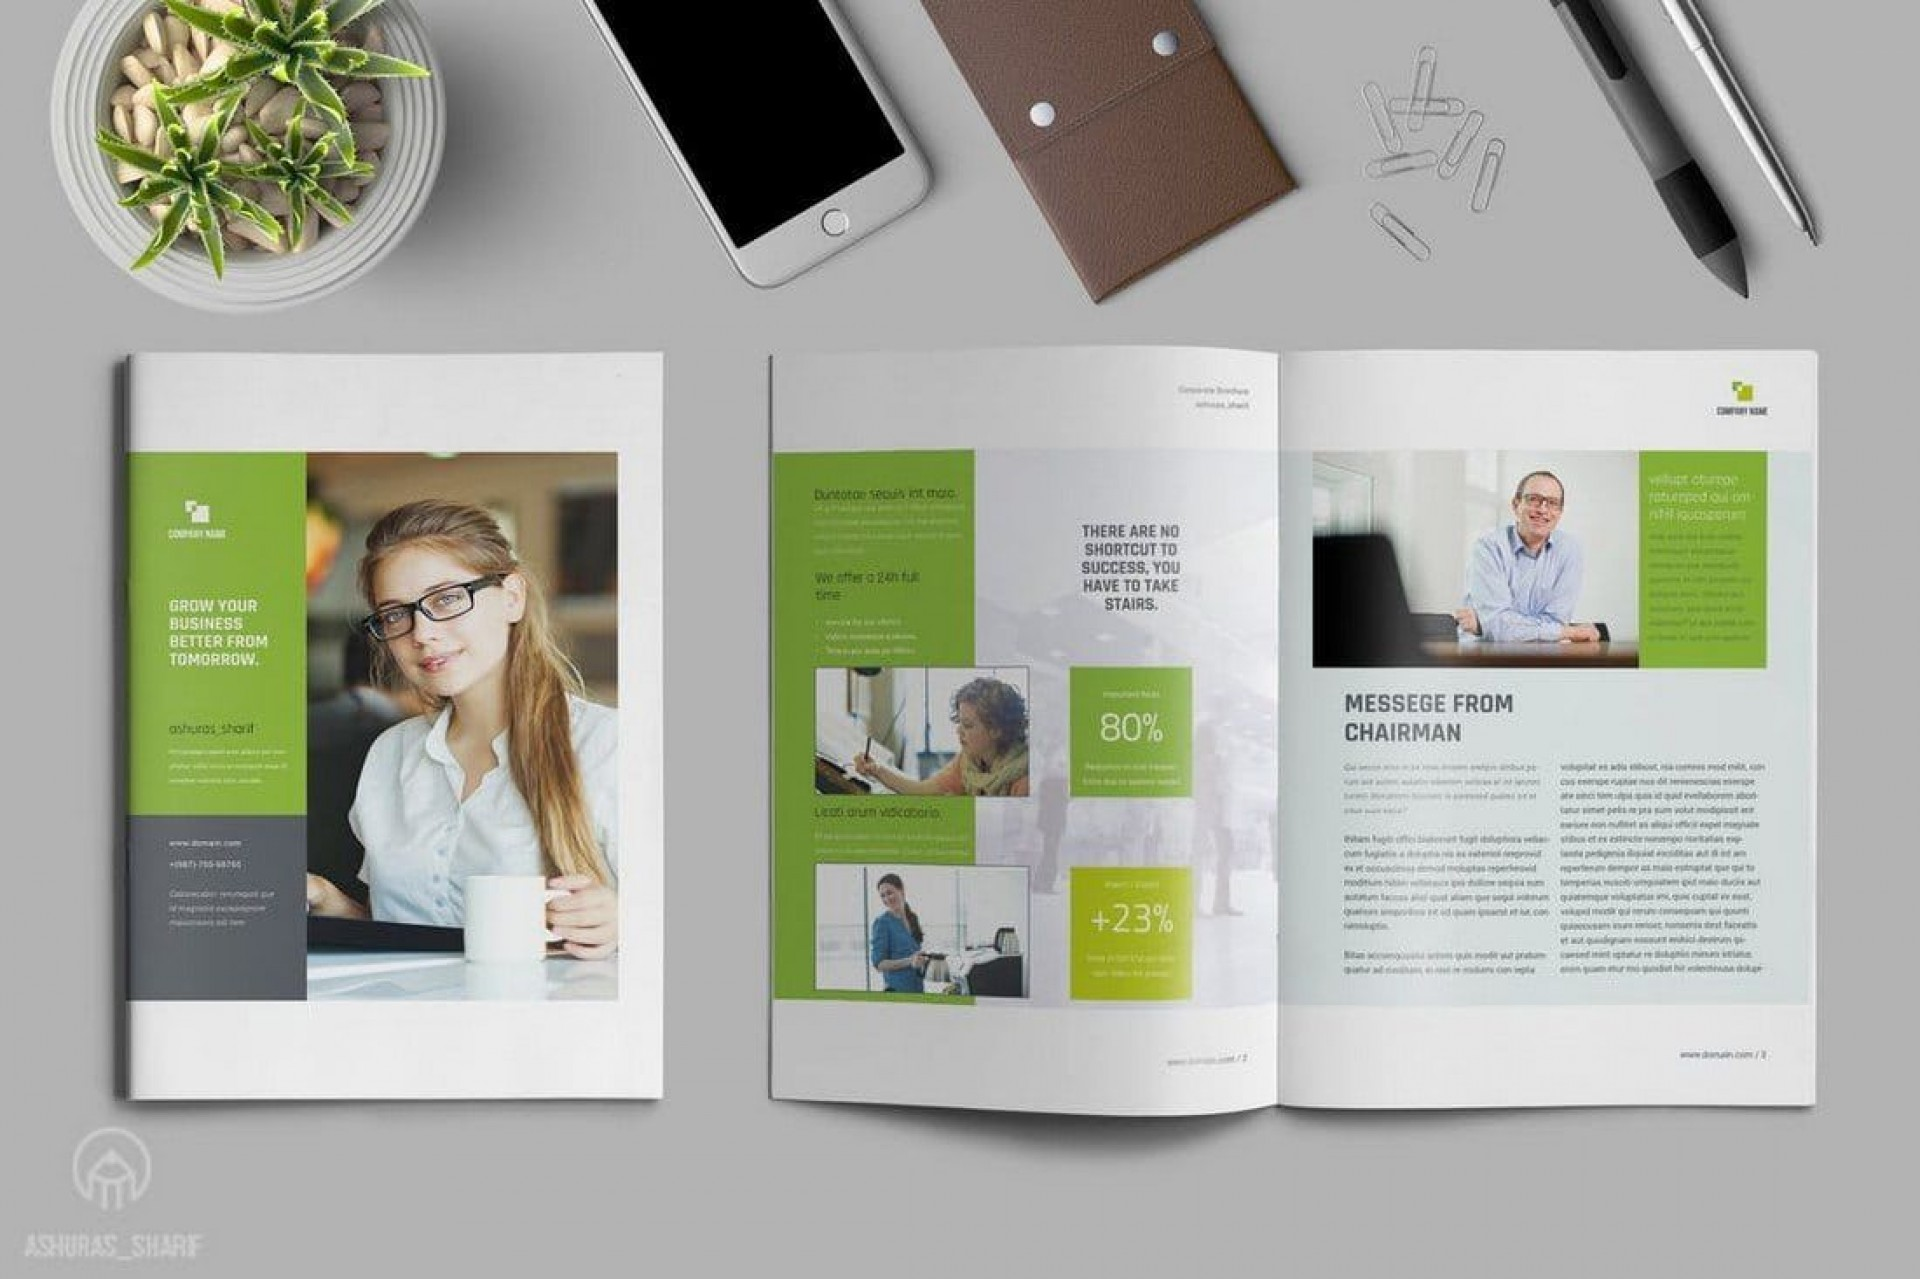 004 Striking Free Annual Report Template Indesign High Definition  Adobe Non Profit1920